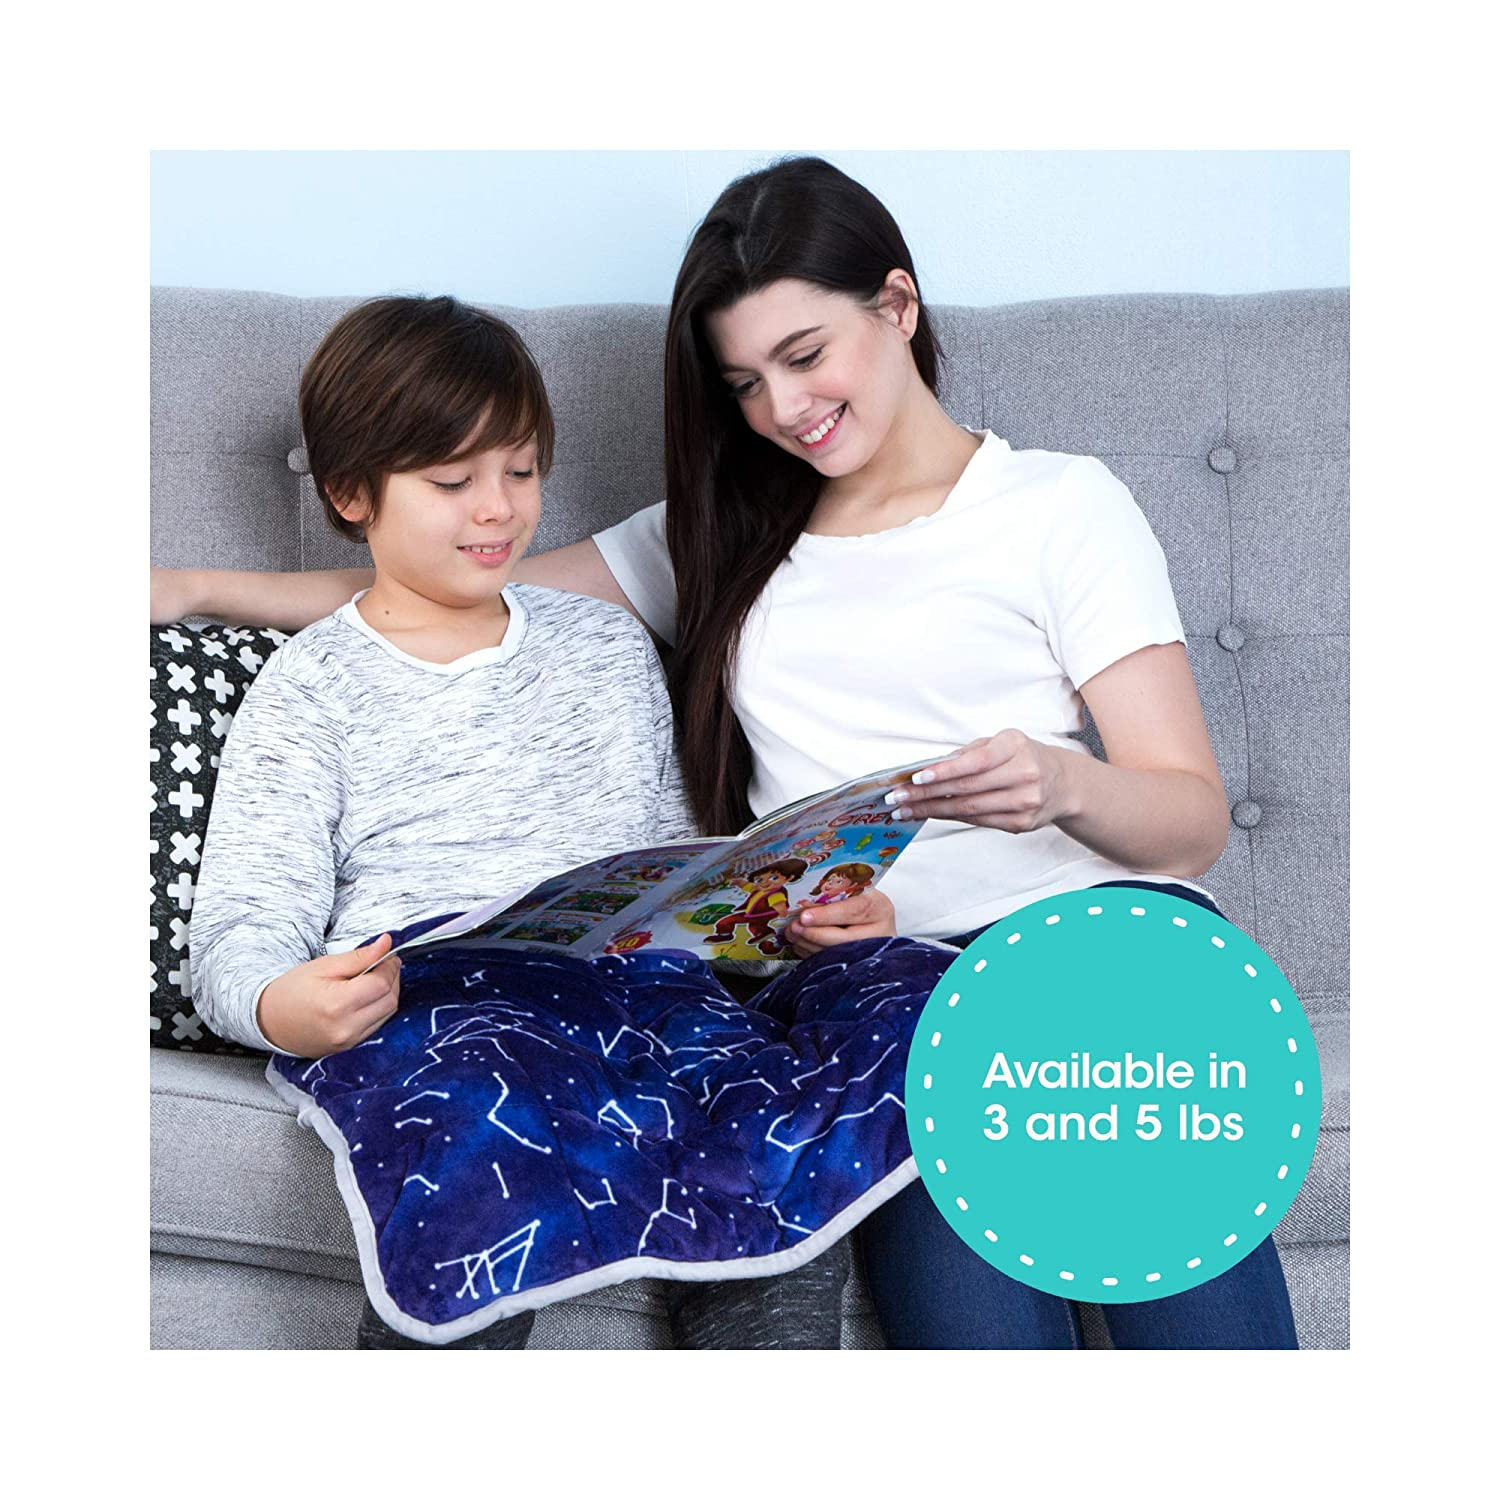 """Florensi 5 Lbs Weighted Lap Pad for Kids (20""""x23""""), Weighted Lap Blanket for Kids, 5 Pound Weighted Lap Blanket, Lap Pad for Children, Sensory Lap Pad for Child Toddler Baby Teenager"""